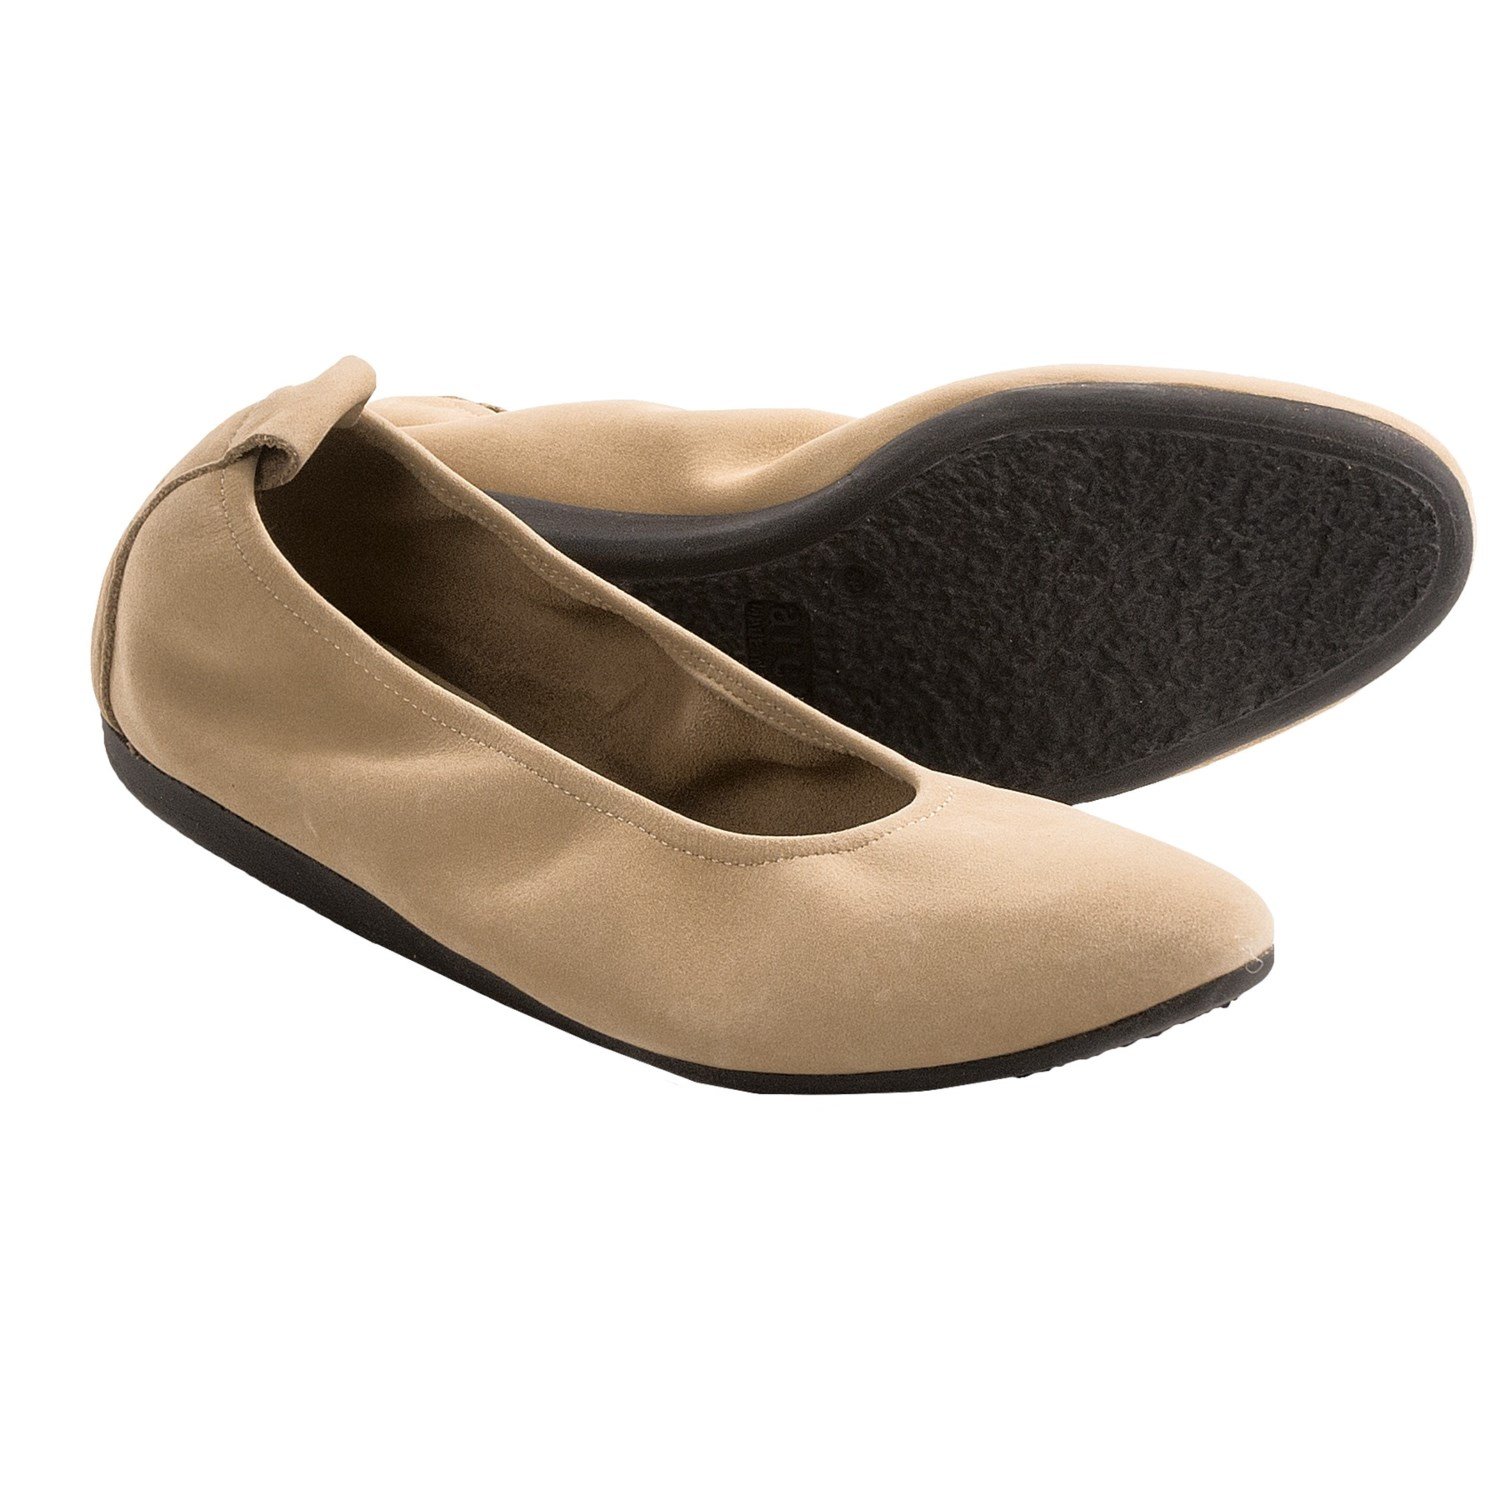 Arche Laius Nubuck Shoes - Slip-Ons (For Women) in Sable Nubuck